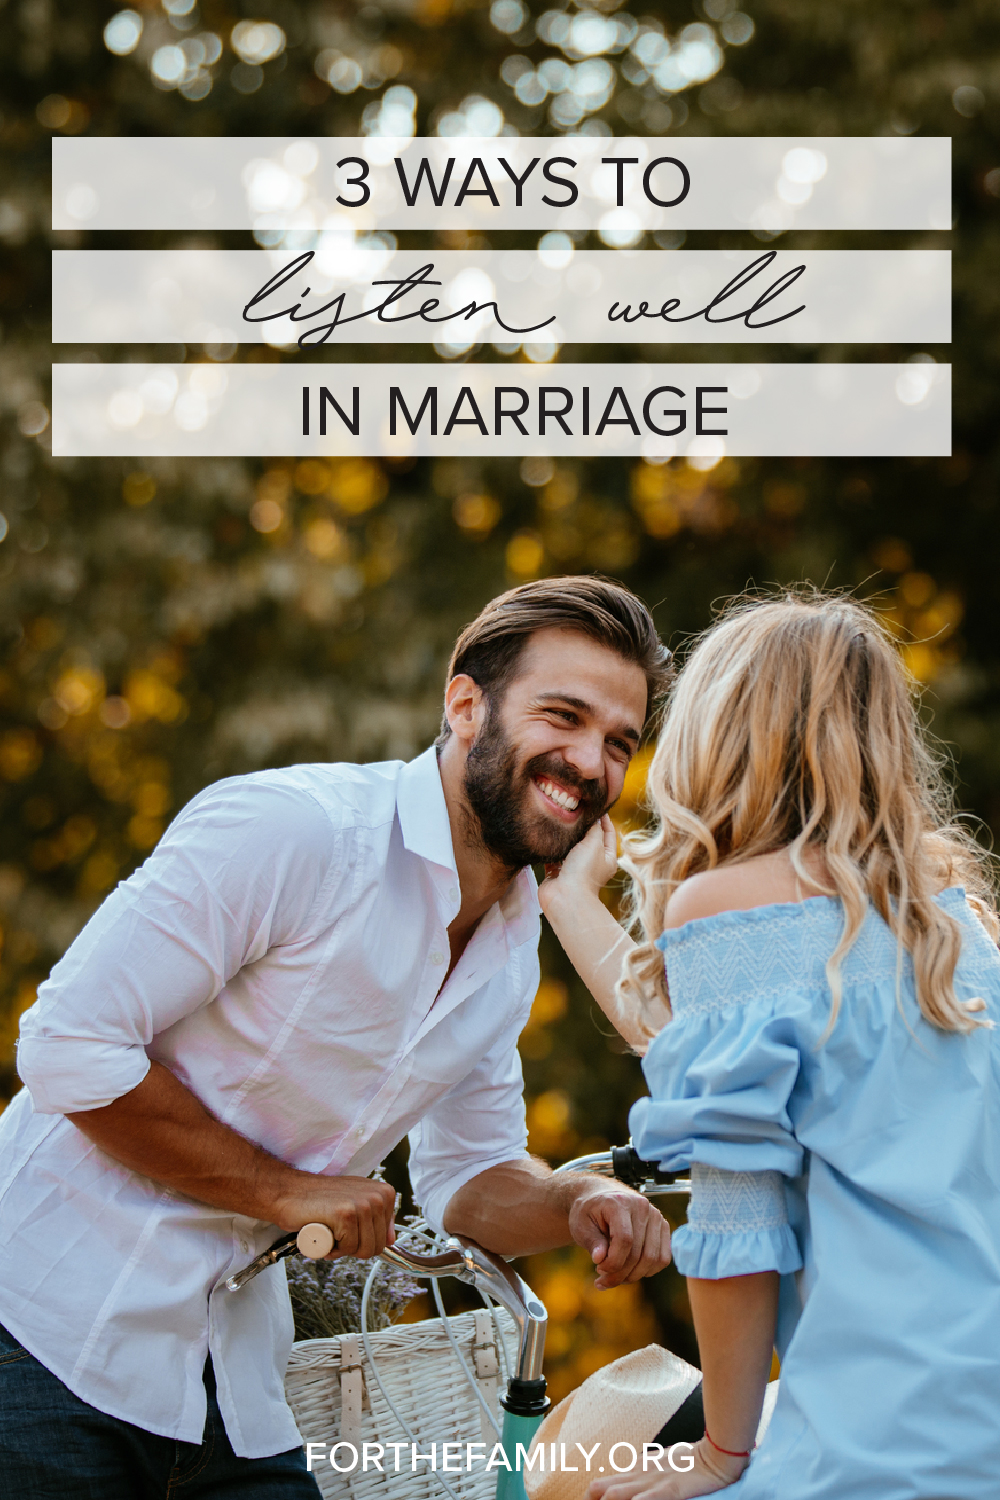 Did you know one of the best ways you can love your spouse is by actively listening? When we enter in to what is on their hearts and show them we care it means so much, so today, we're cultivating the art of listening together. Join us!